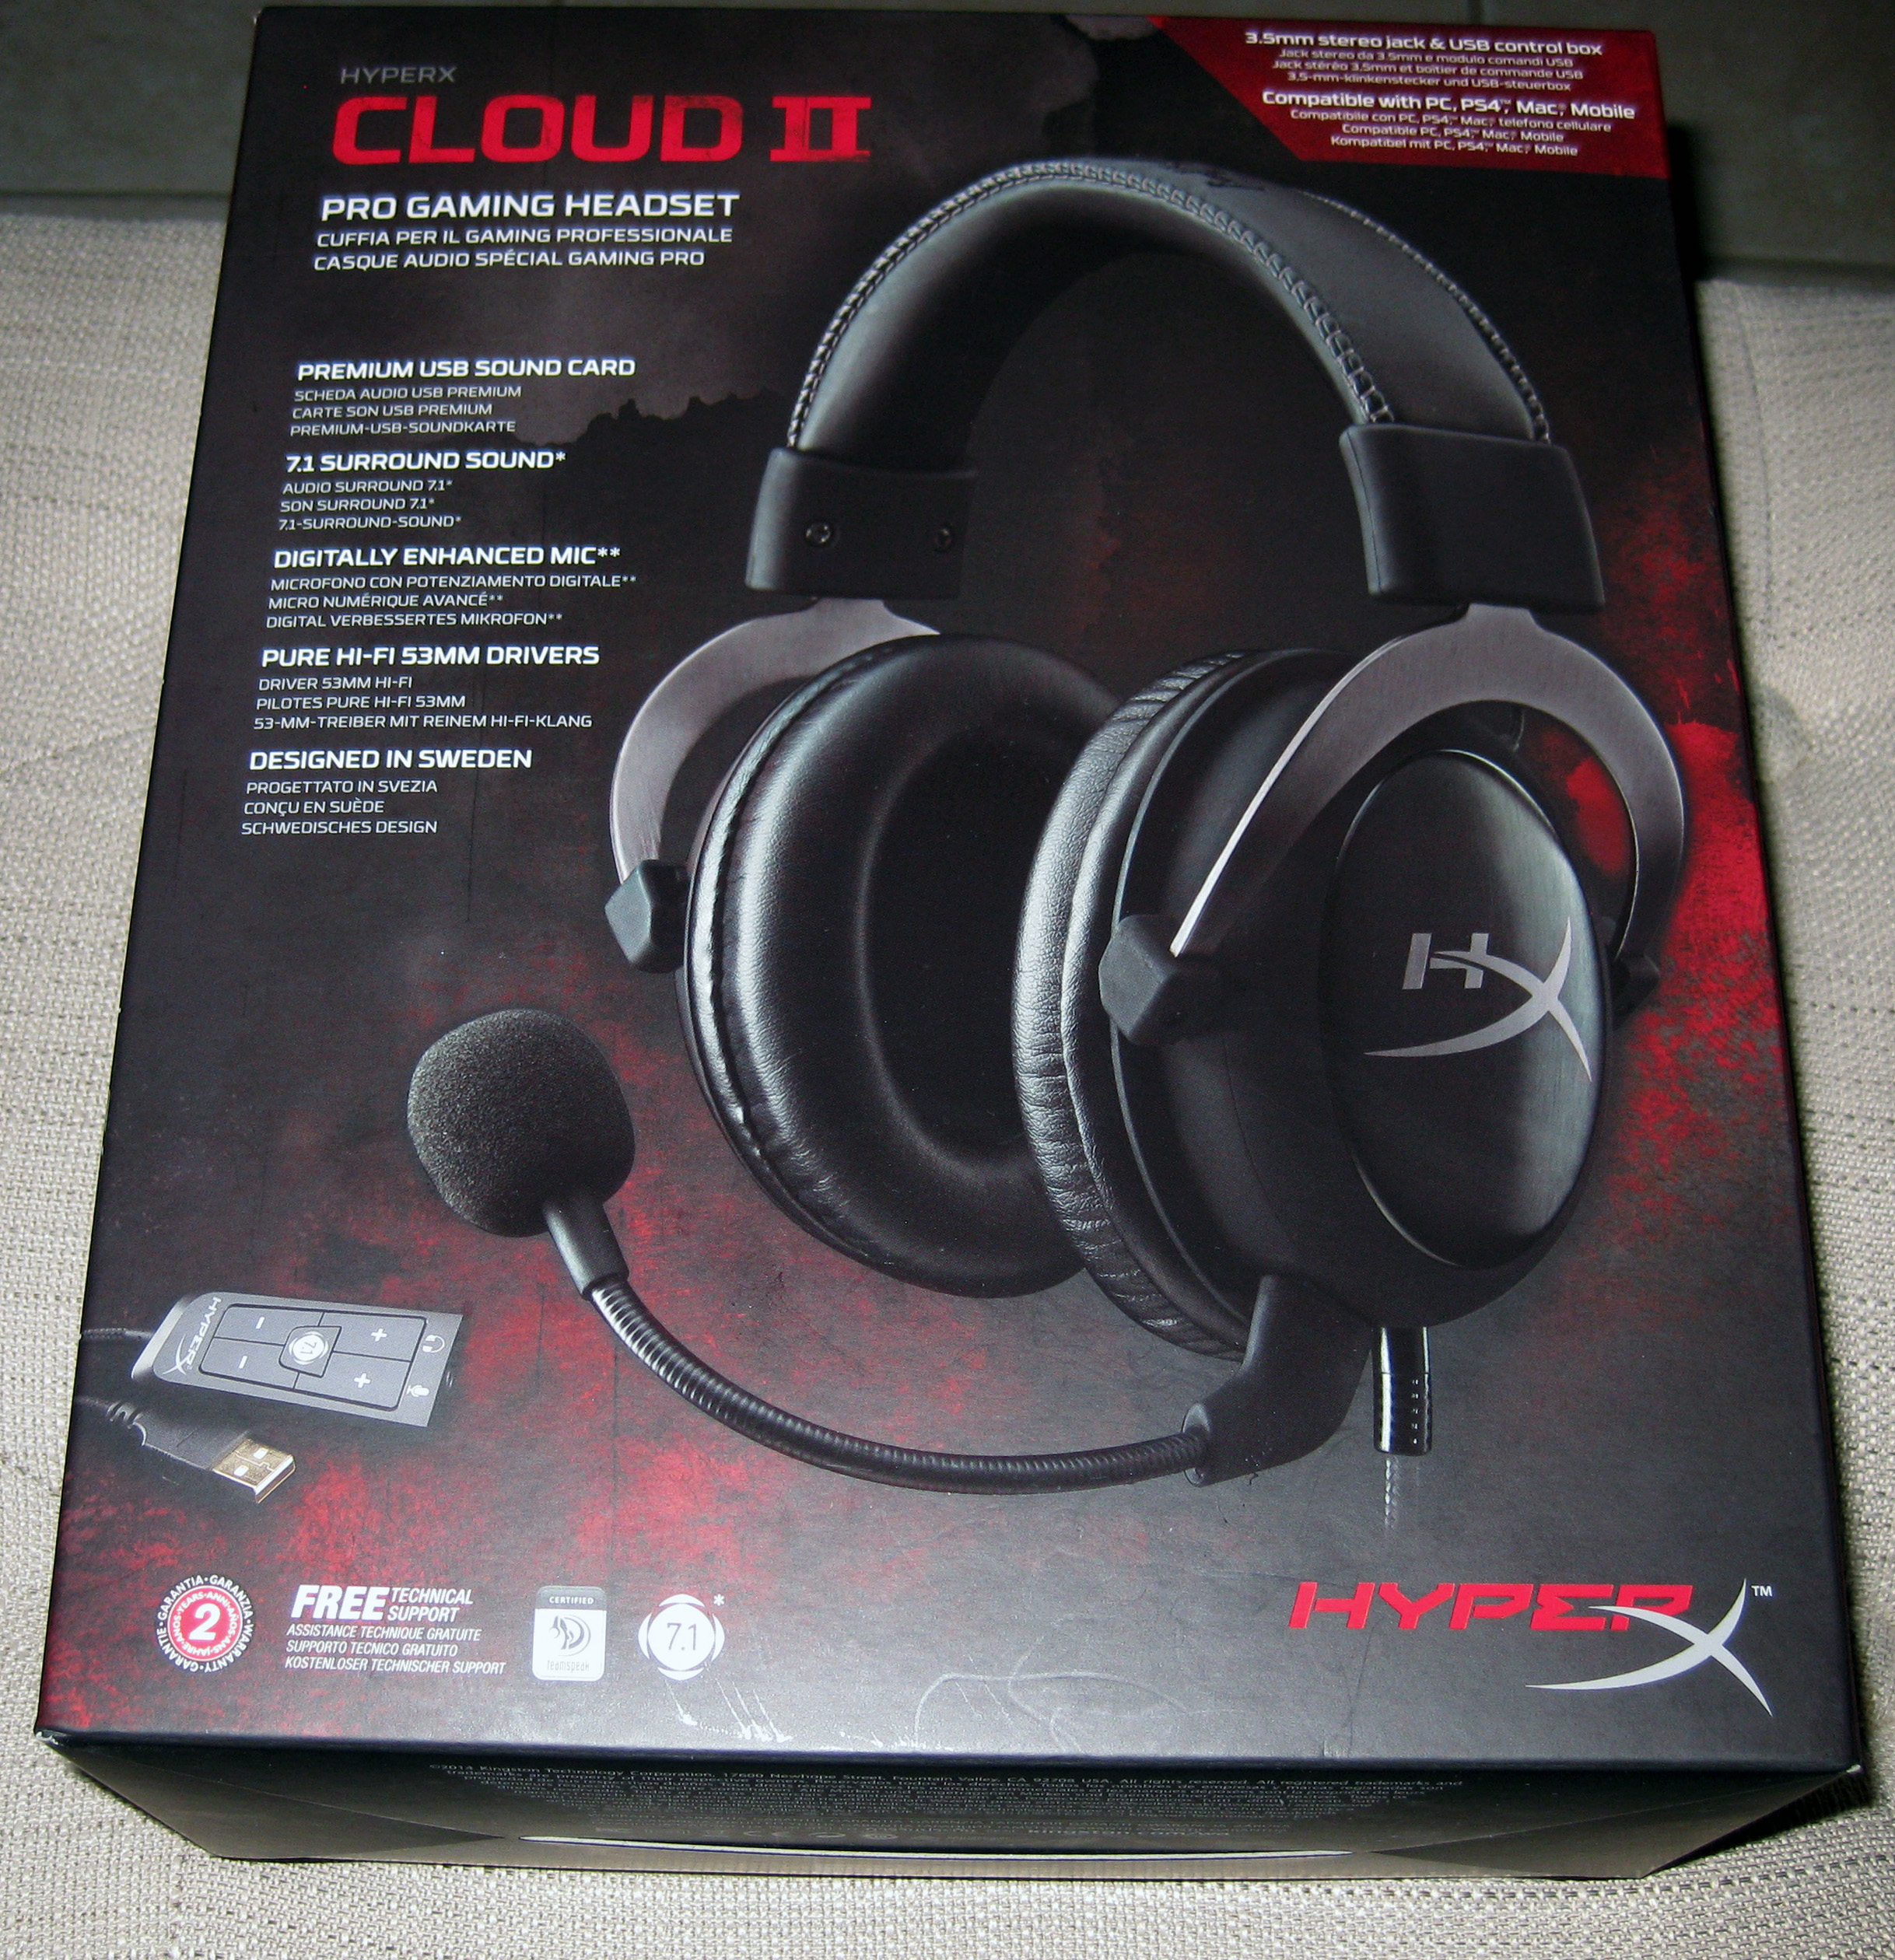 Kingston hyperx cloud ii gaming headset word cloud - The Cloud Ii Headset Itself Is High In Quality And The Metal Part Of The Headset That Connects The Earcups To The Band Does A Lot To Enhance That Feeling